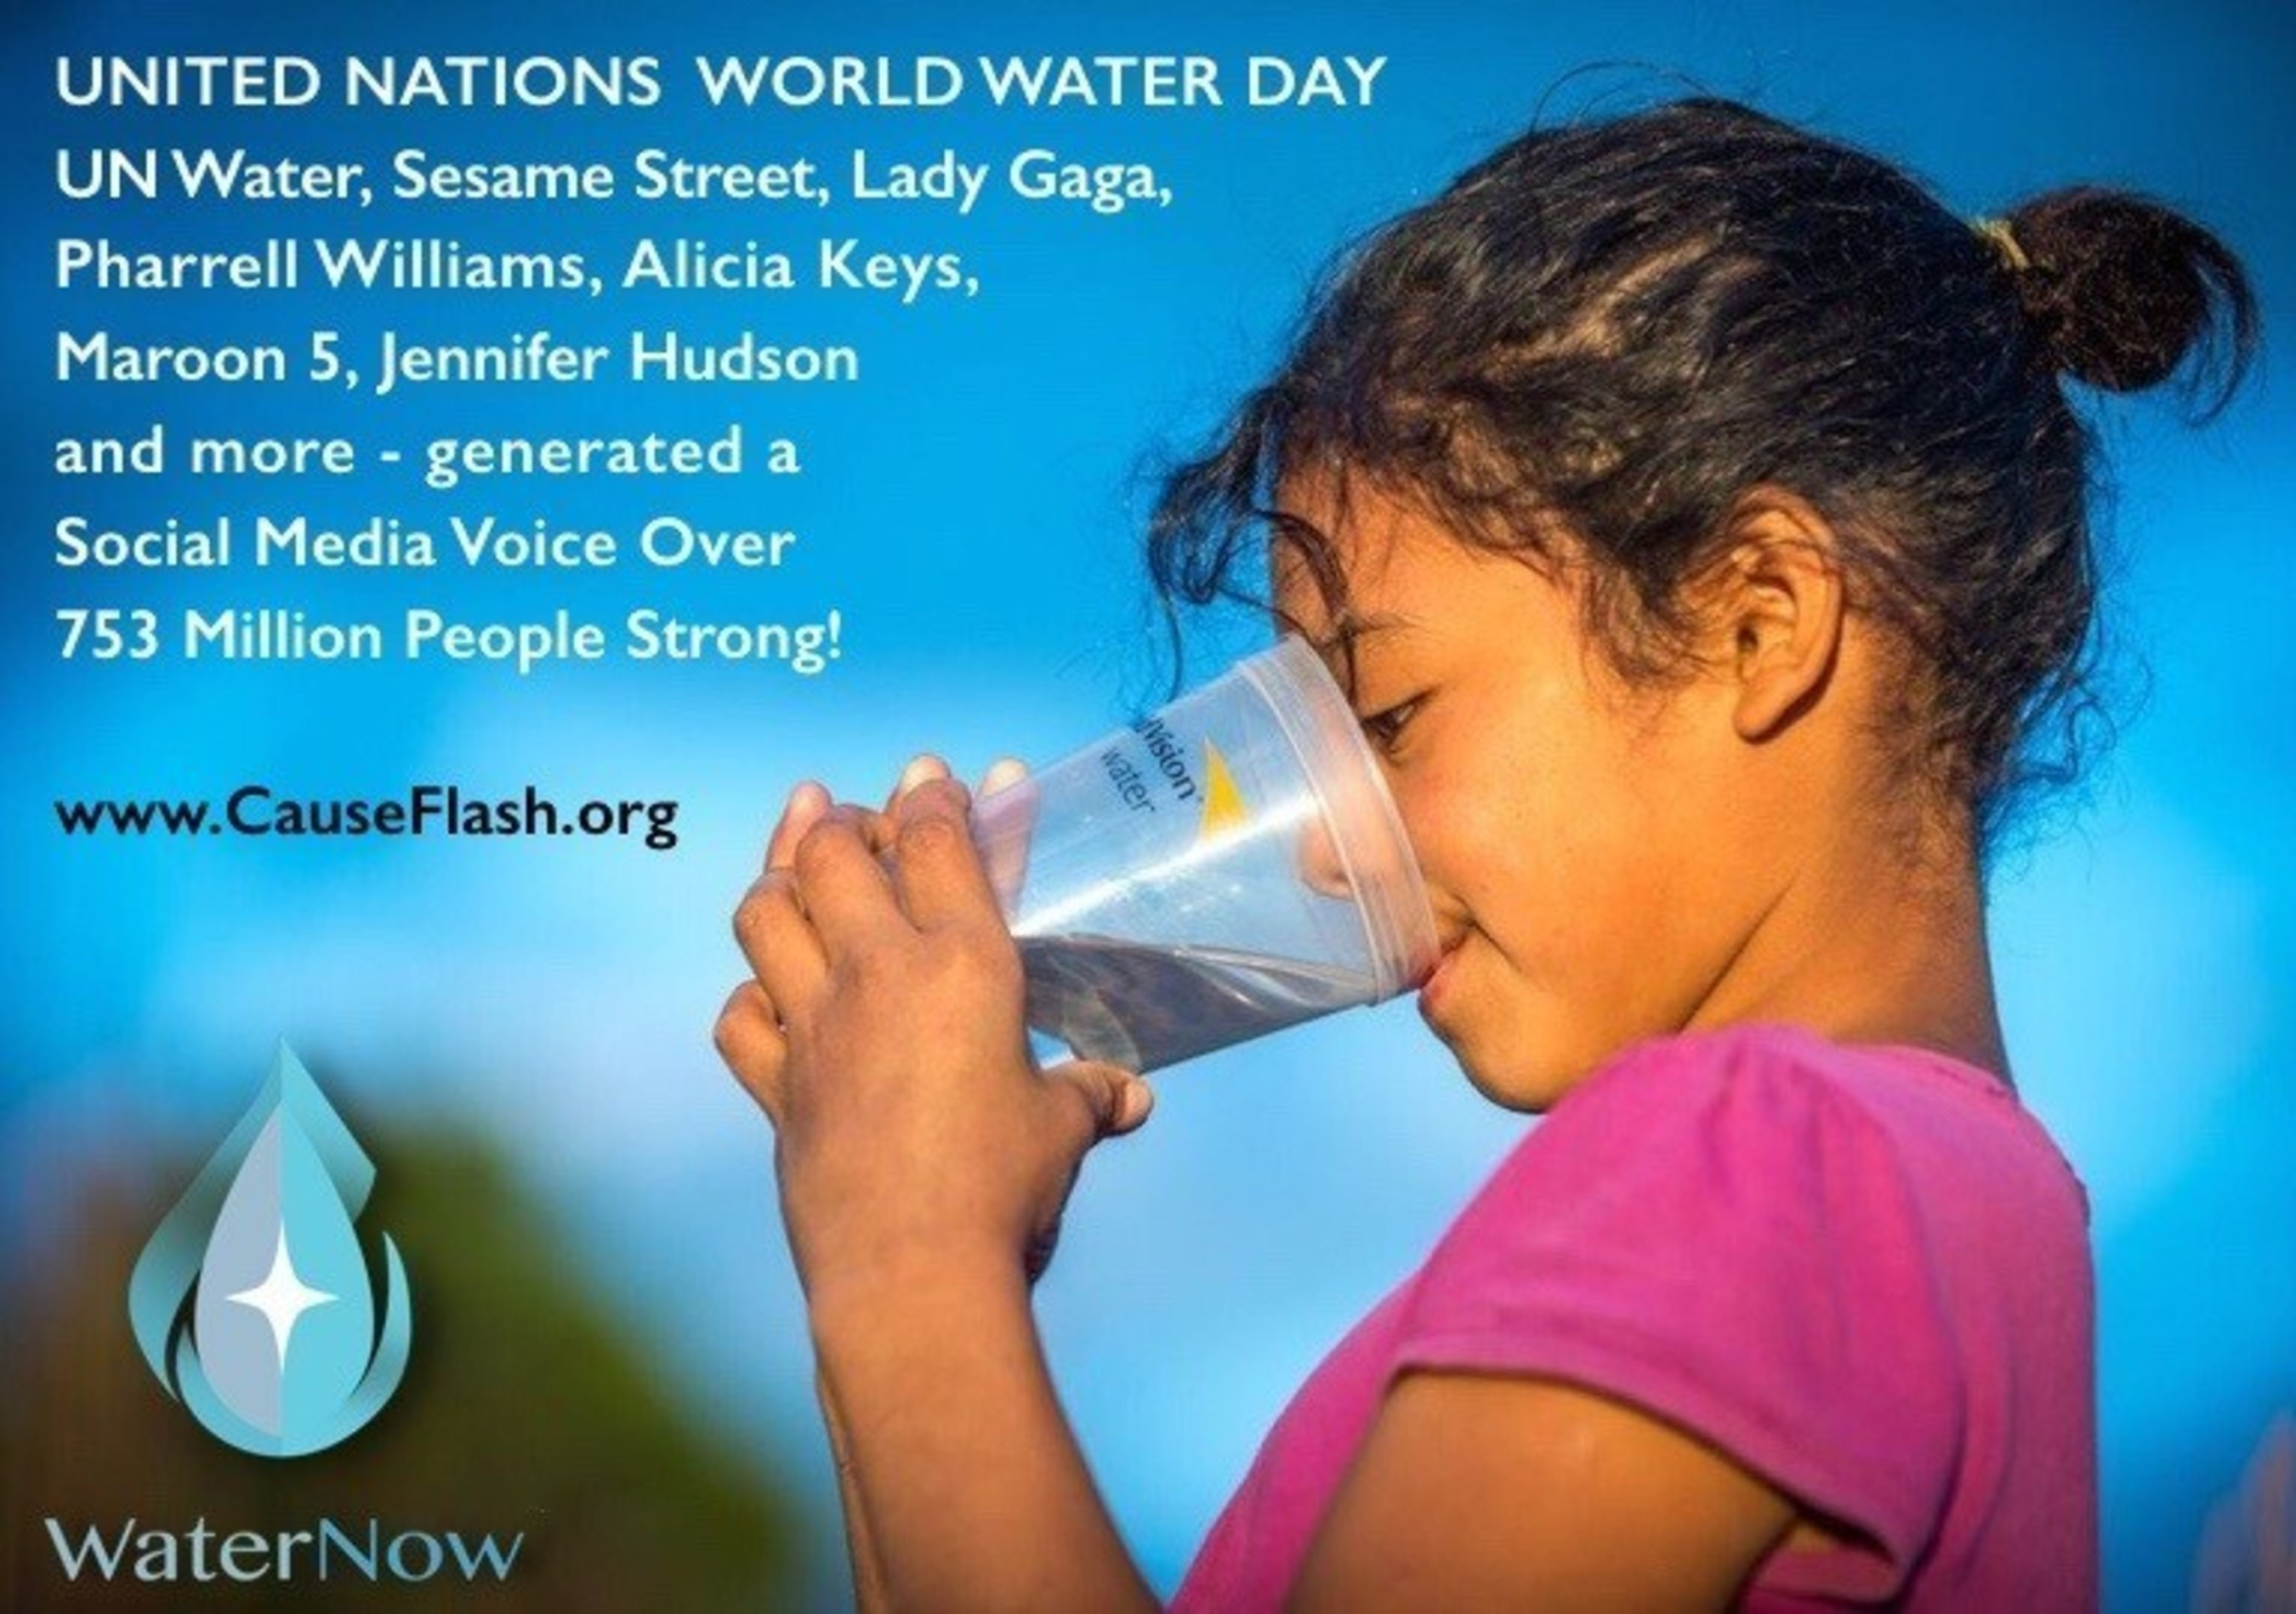 Water Now promotes UN World Water Day so children can receive clean water via World Vision Water